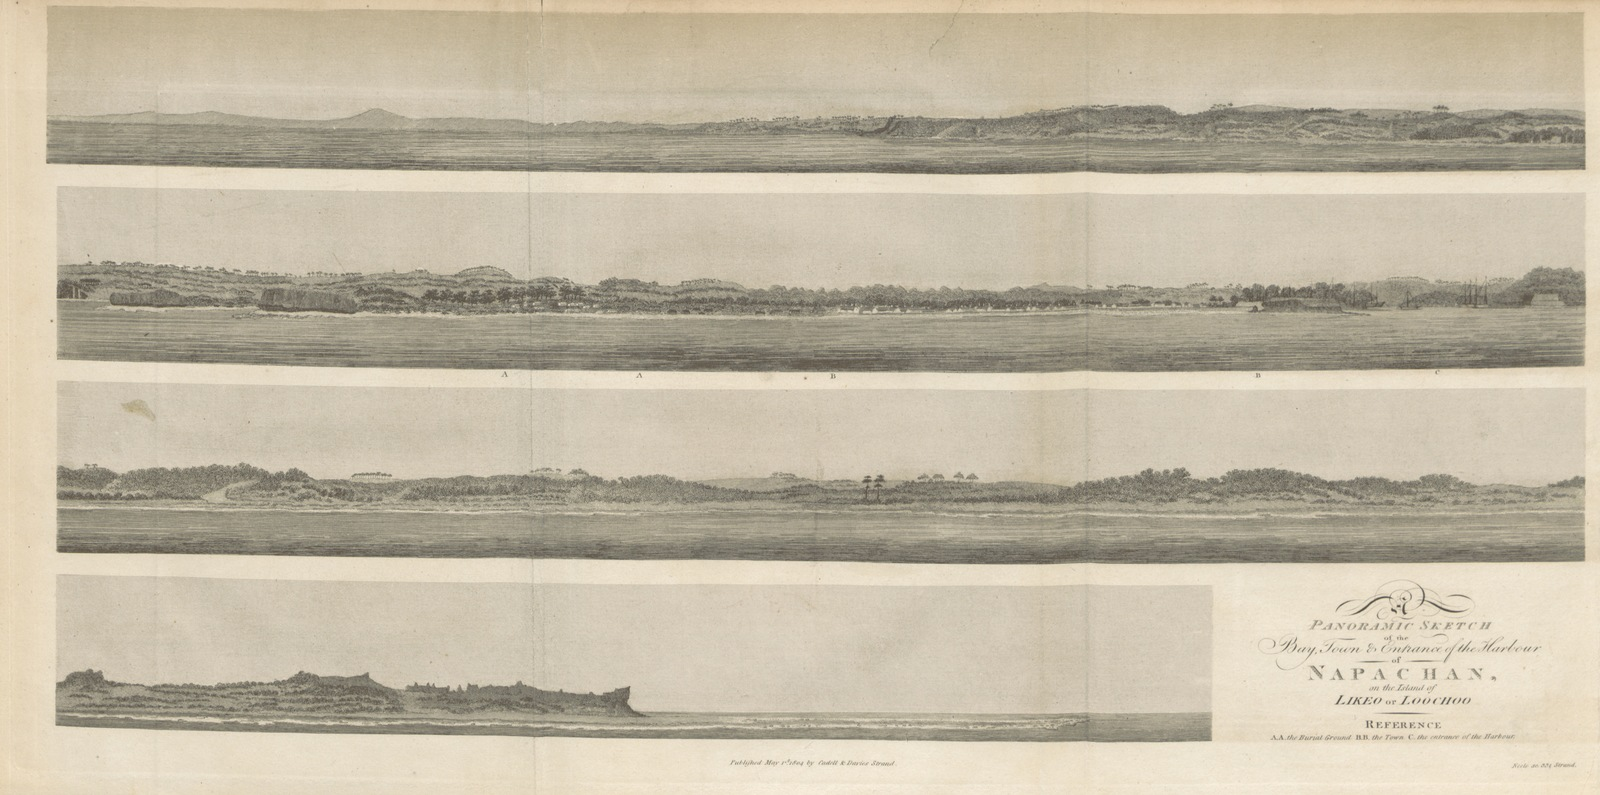 """portrait from """"A Voyage of Discovery to the North Pacific Ocean ... Performed in His Majesty's Sloop Providence, and her tender, in the years 1795, 1796, 1797, 1798. [With plates, including maps.]"""""""